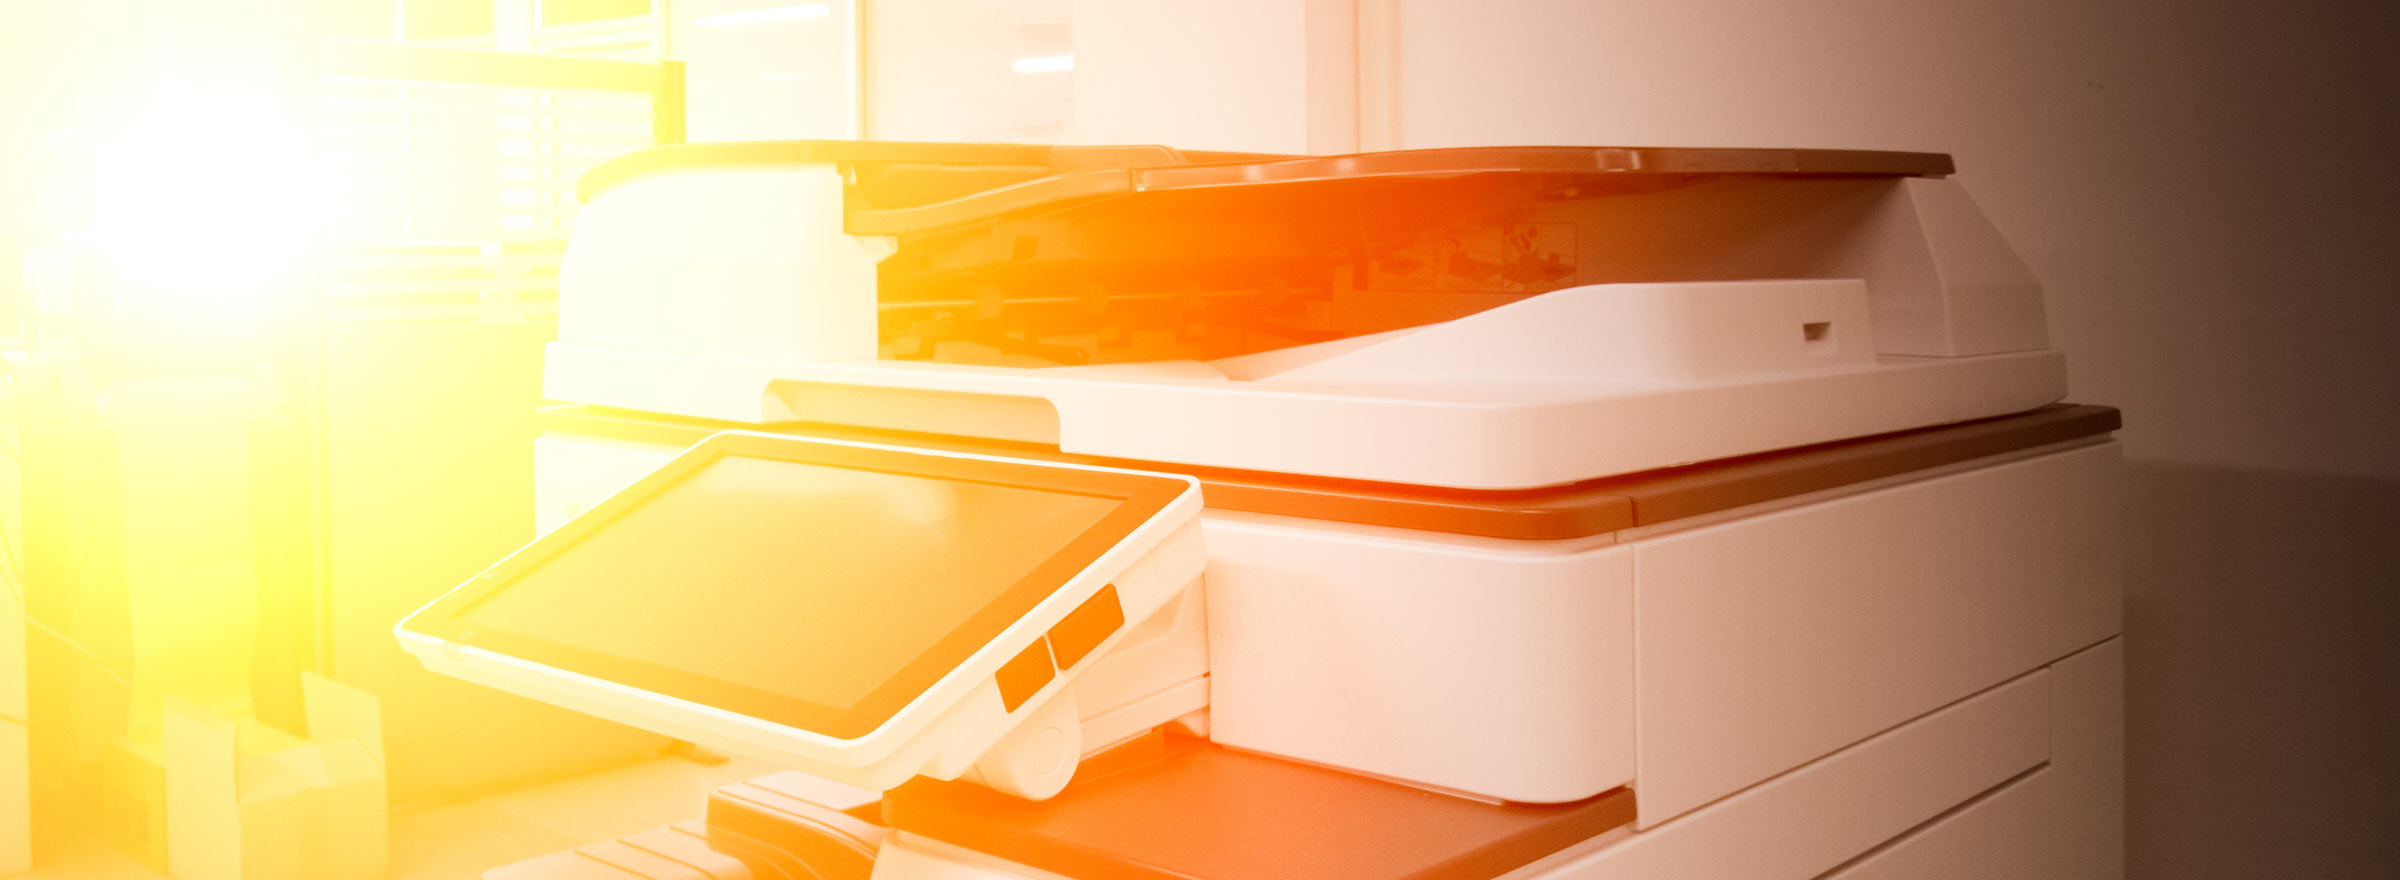 a copier bathed in sunlight, symbolizing the vulnerability of copiers to data theft and the need to keep nonprofit data secure